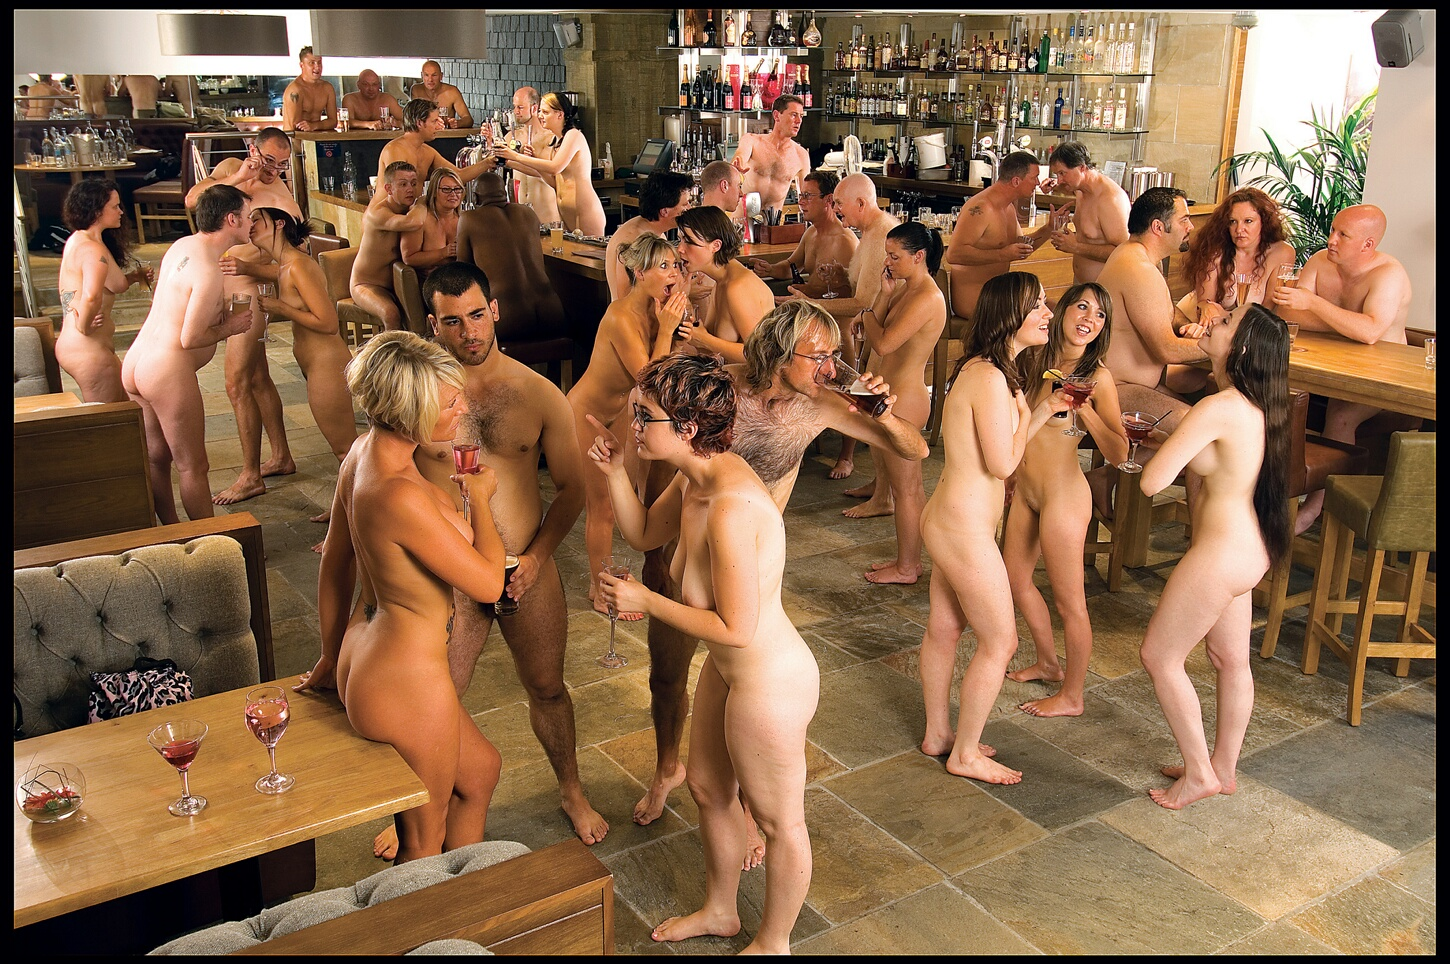 Xhamster friend meetup party